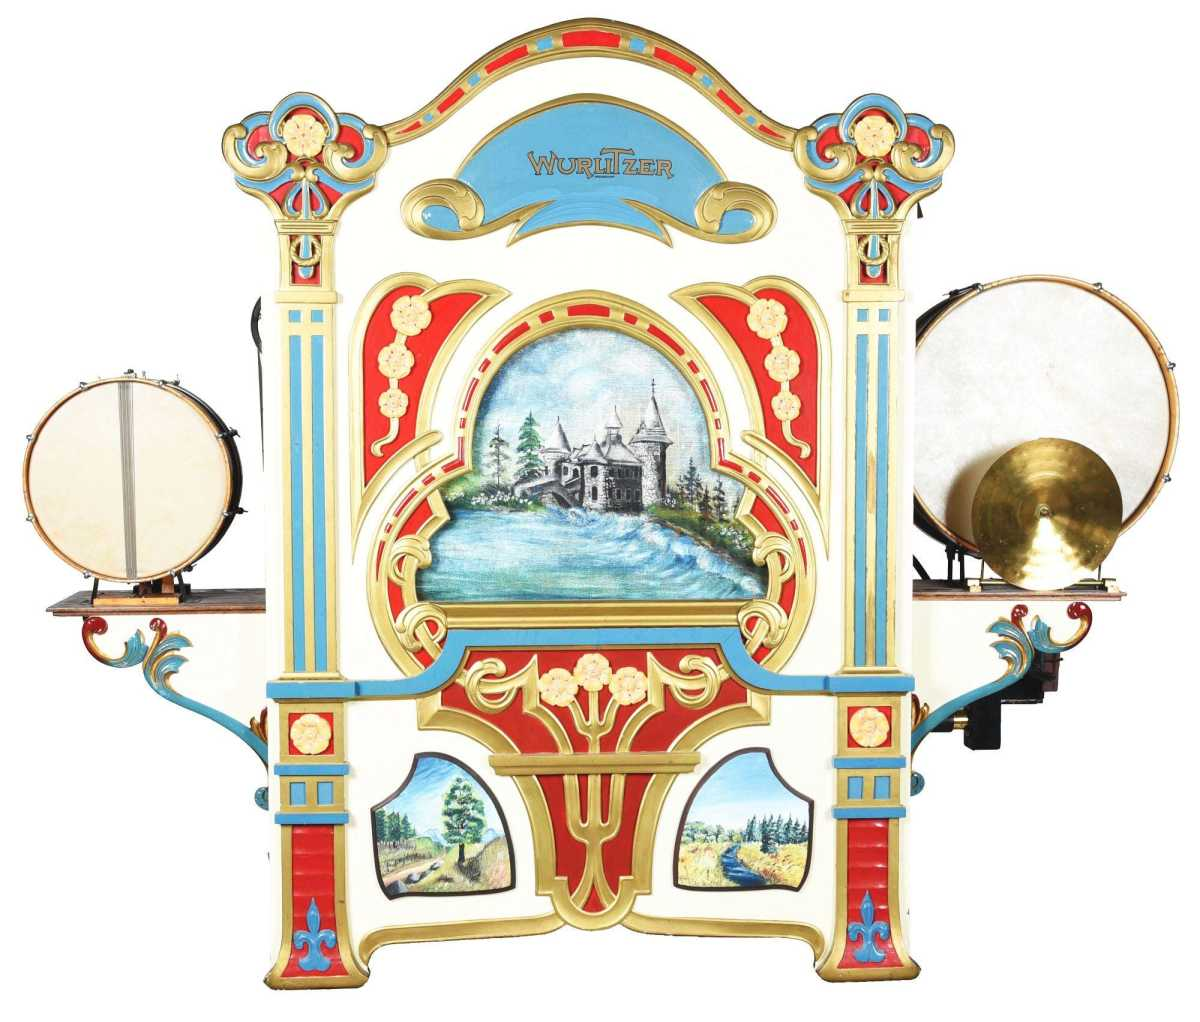 Wurlitzer Style No. 146A military band organ with a full complement of keys, drums, horns and pipes, a model manufactured in the second and third decades of the 20th century sold above estimate for $21,600.